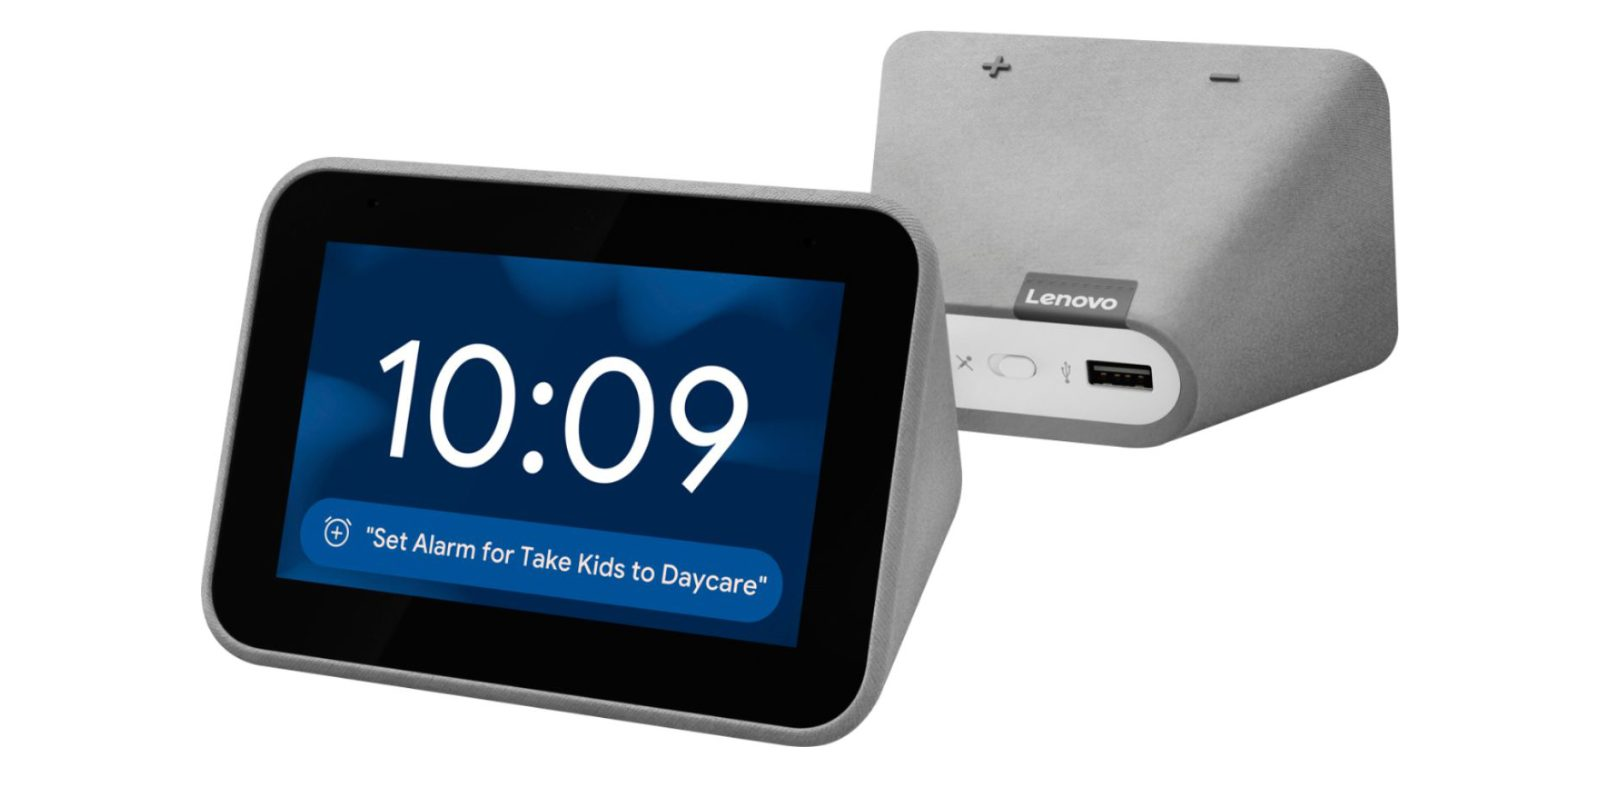 Lenovo Smart Clock with Assistant hits new low at $50, Smart Display from $90